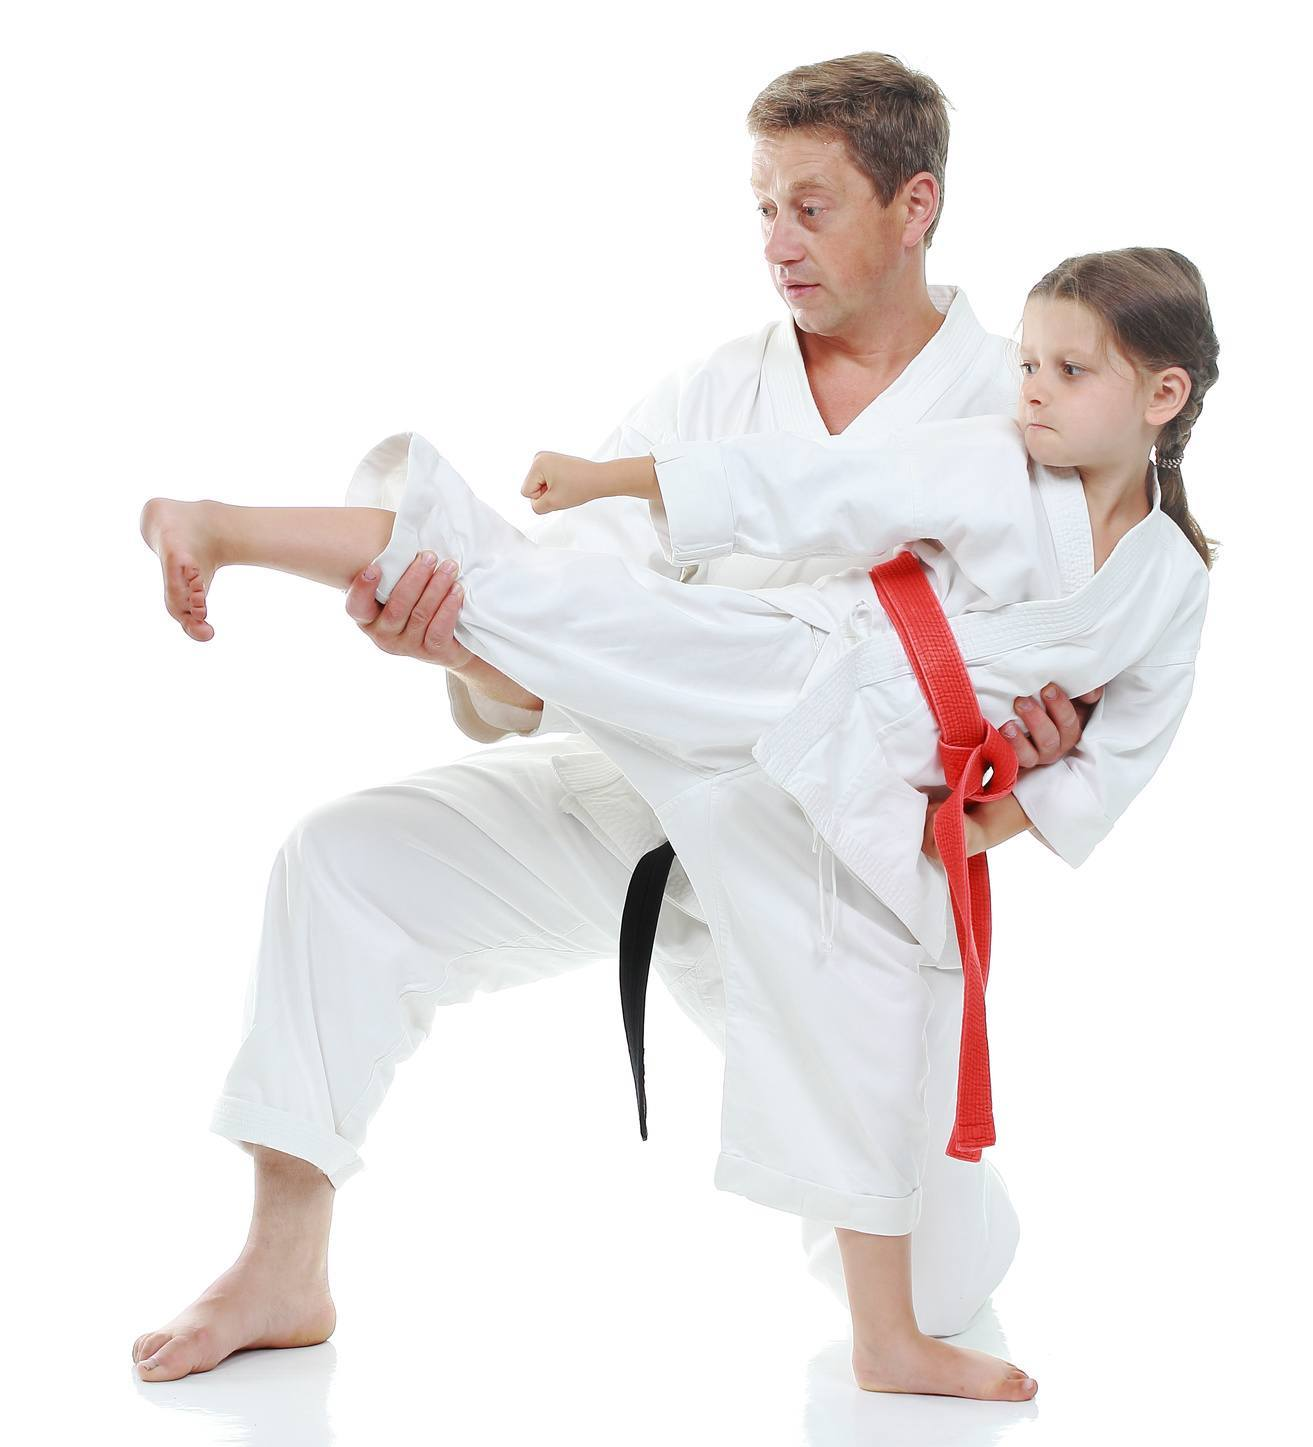 5 Signs You Have Found A Great Martial Arts School | World